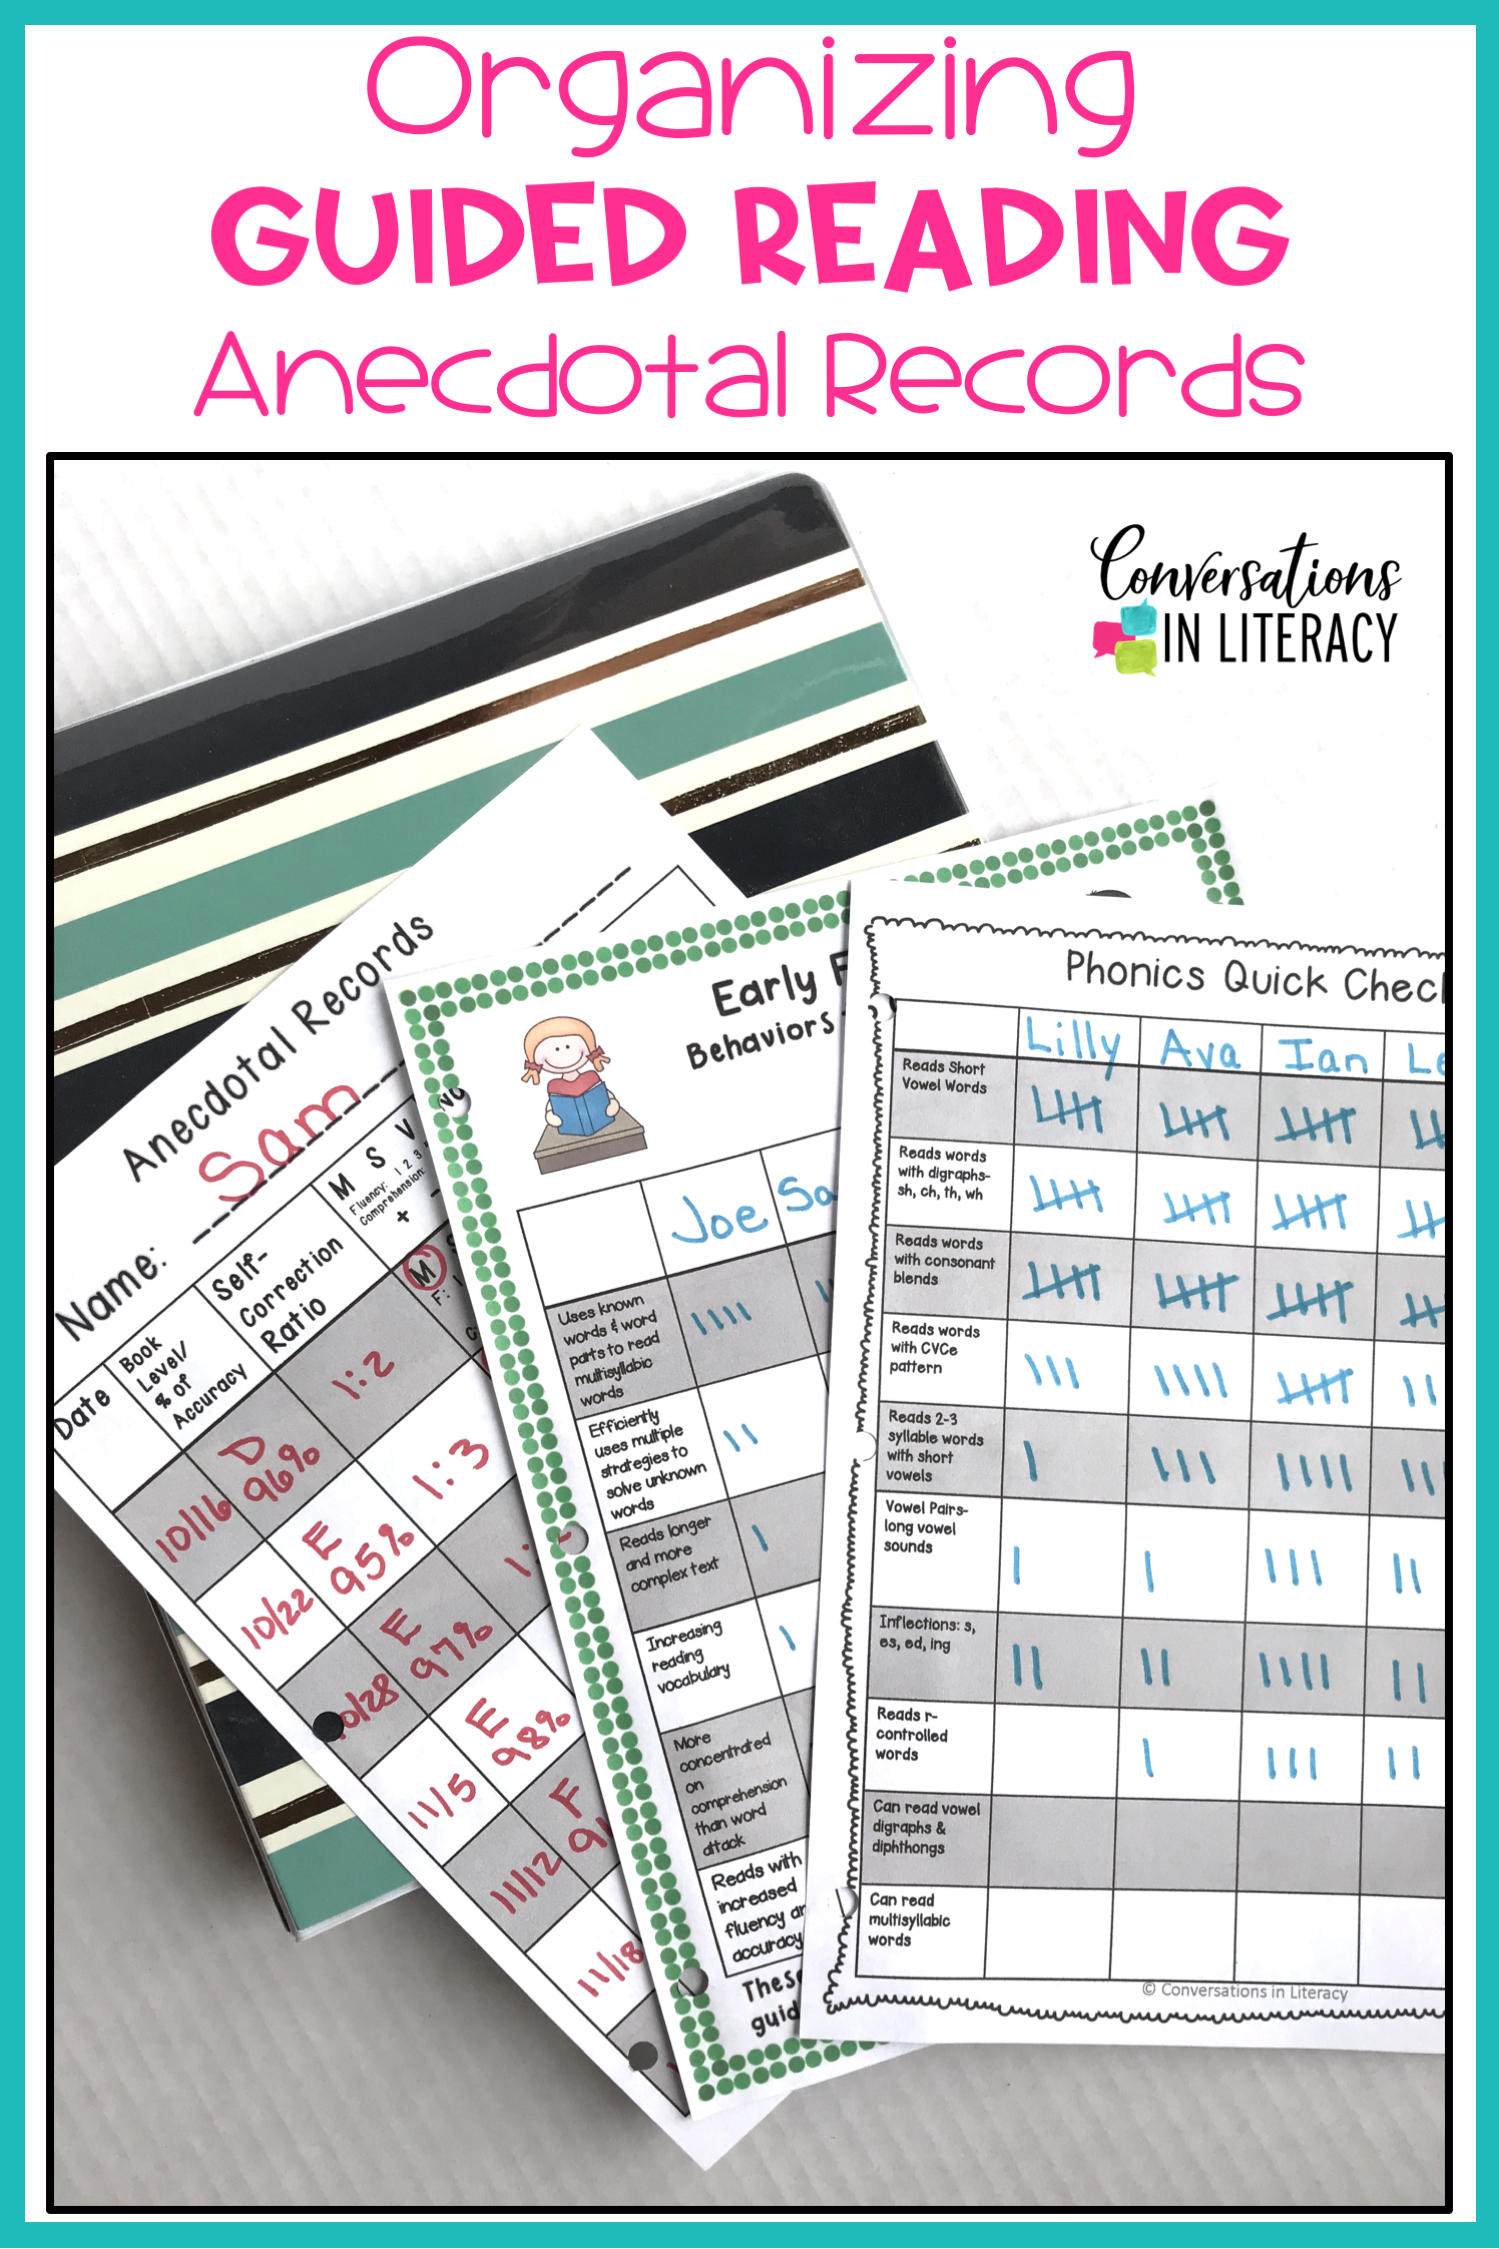 Tips For Getting Your Anecdotal Records Amp Guided Reading